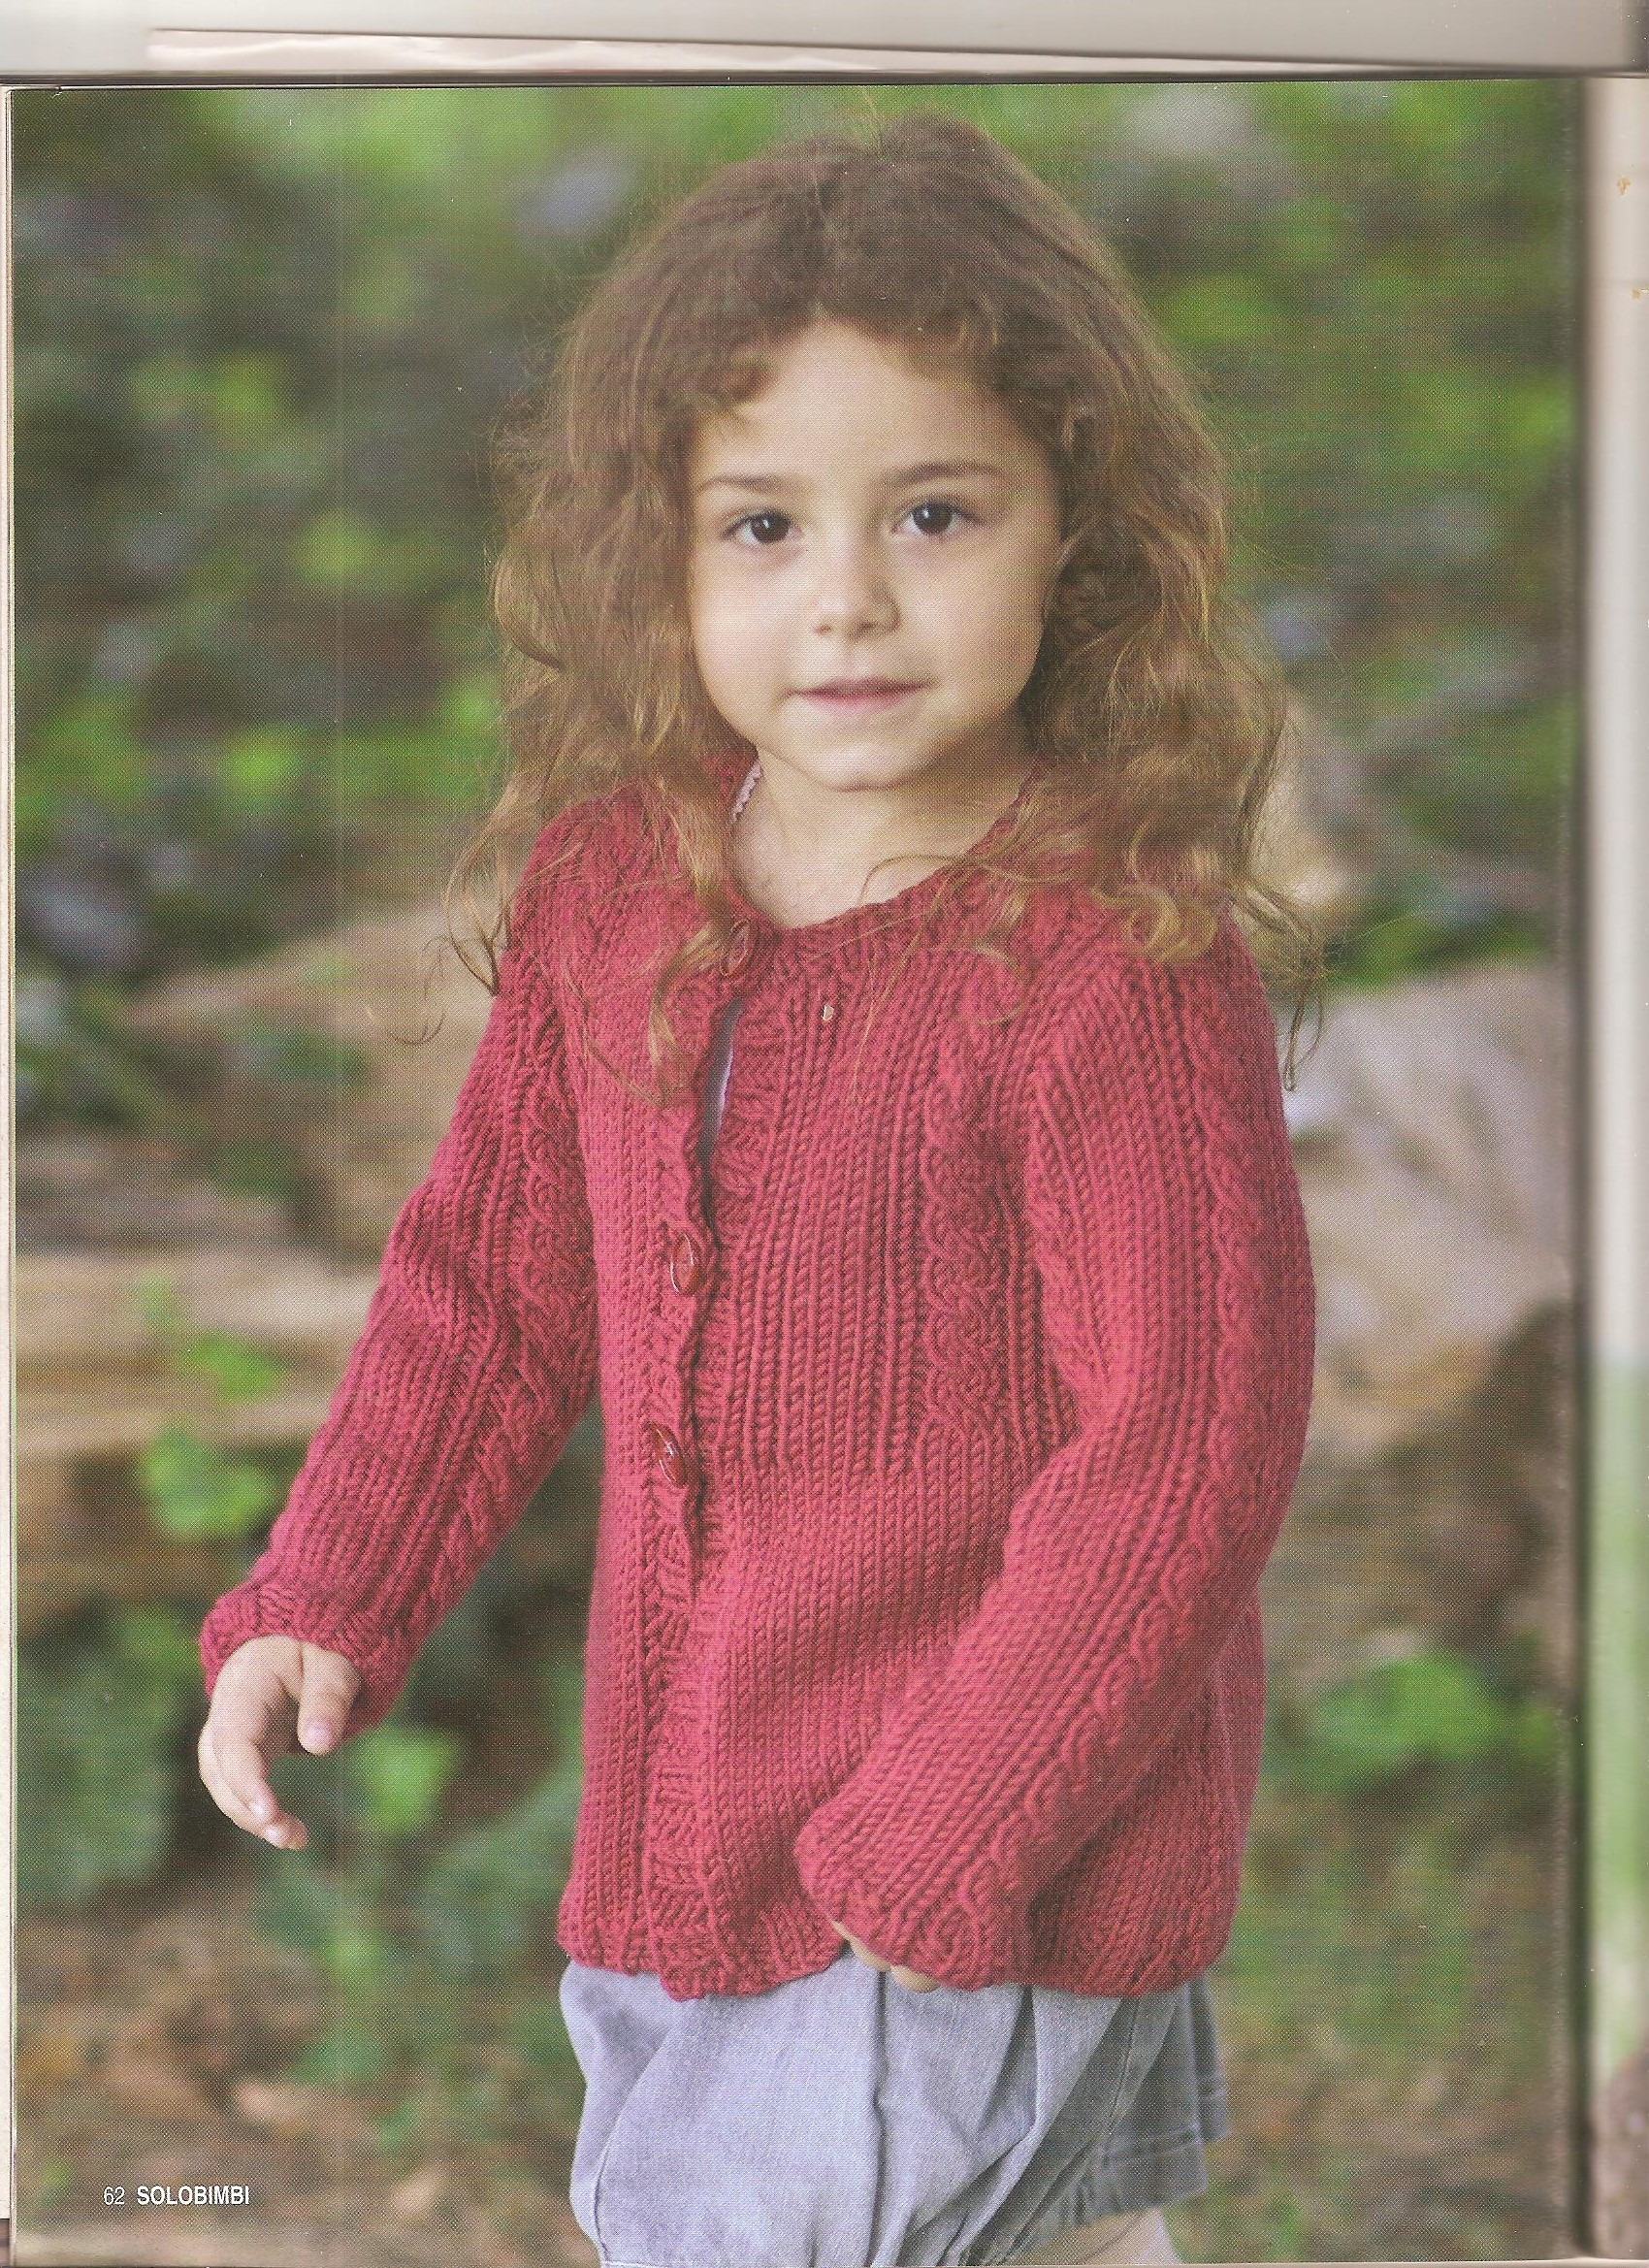 Find this Pin and more on maglia - bambini e neonati by Mariellam. This Pin was discovered by Hul Pattern in french Baby Overalls with detailed cabled bodice and matching sweater Knitting pattern by OGE Knitwear Designs Onsie and booties FERRI 3 e 3,5 misure: 1 - 3 mesi e () mesi.